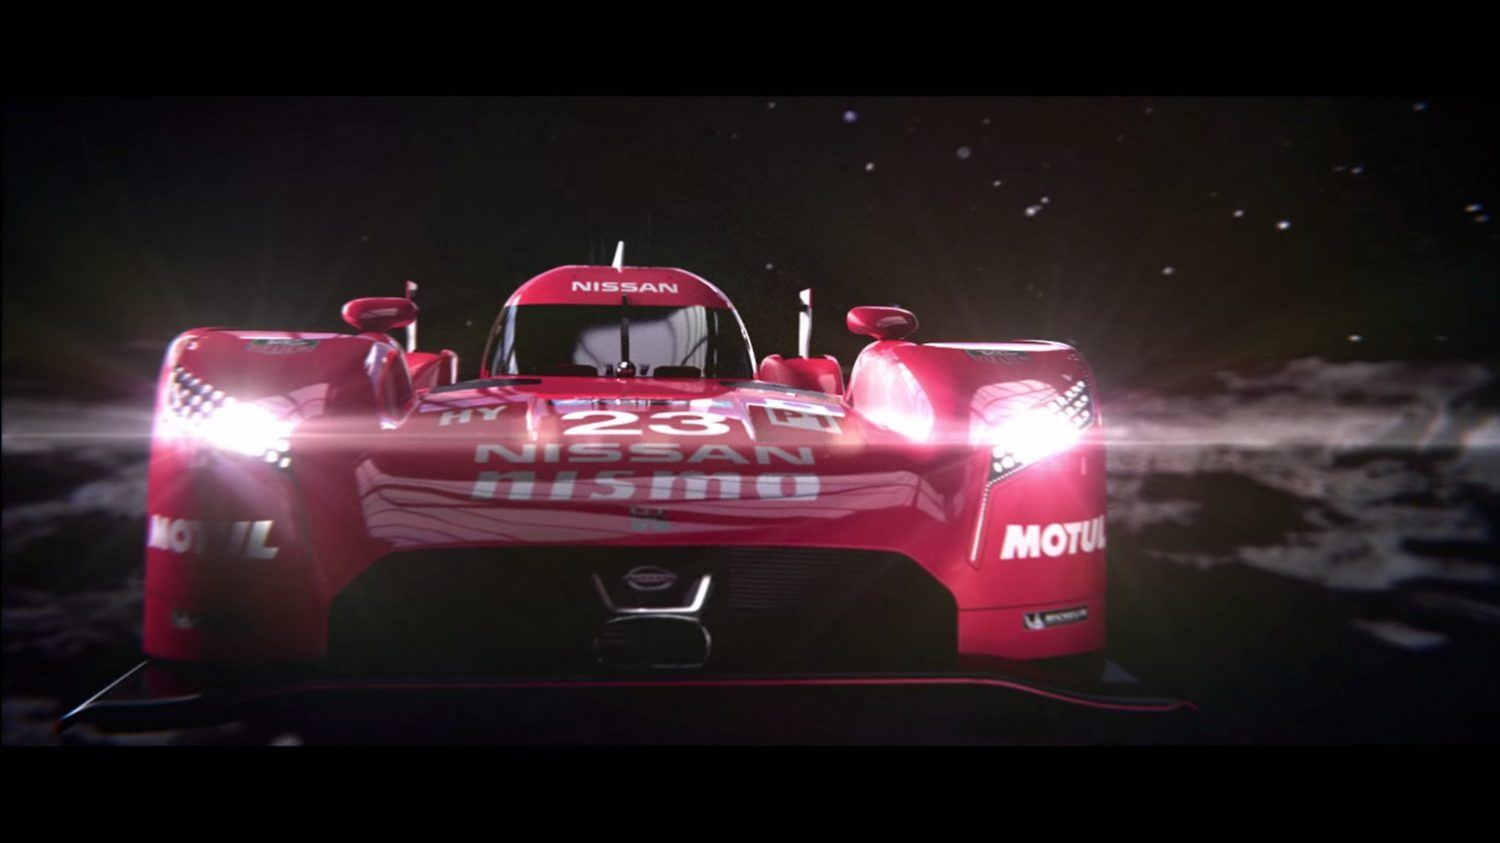 GT-R LM NISMO - Hero Comes Home, video.